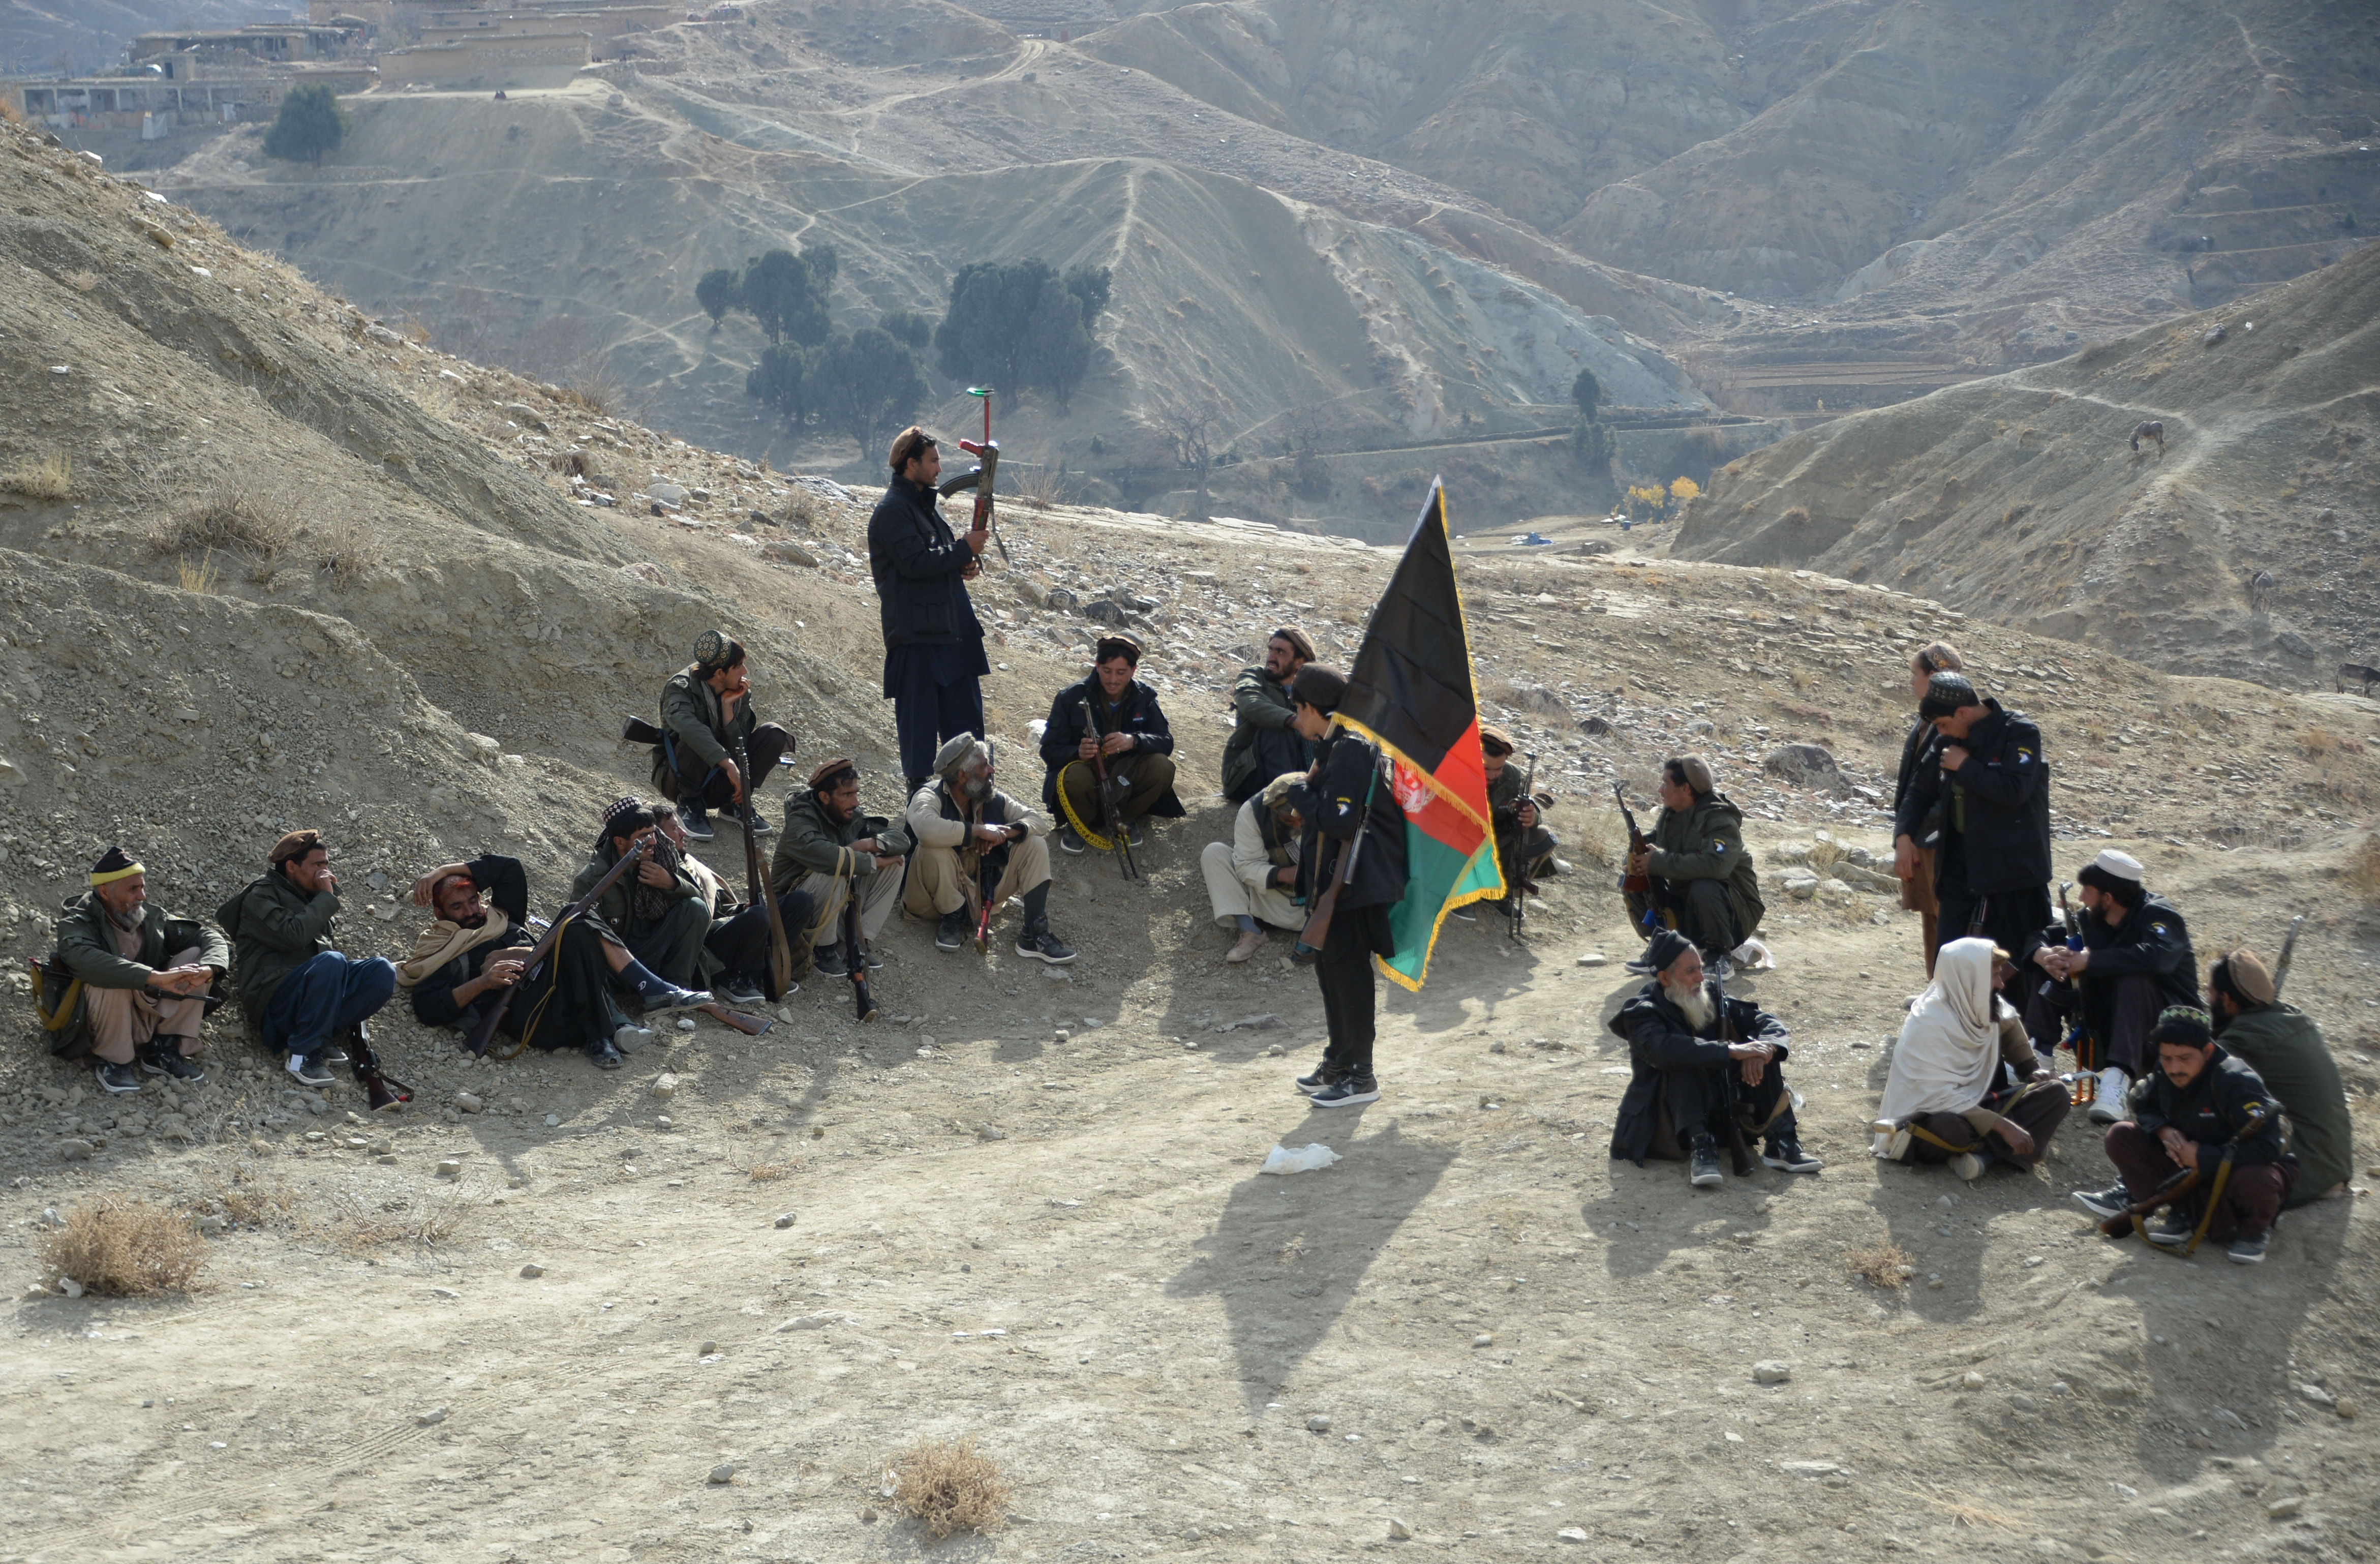 ISIS, other militants clash over illegal logging in Nangarhar